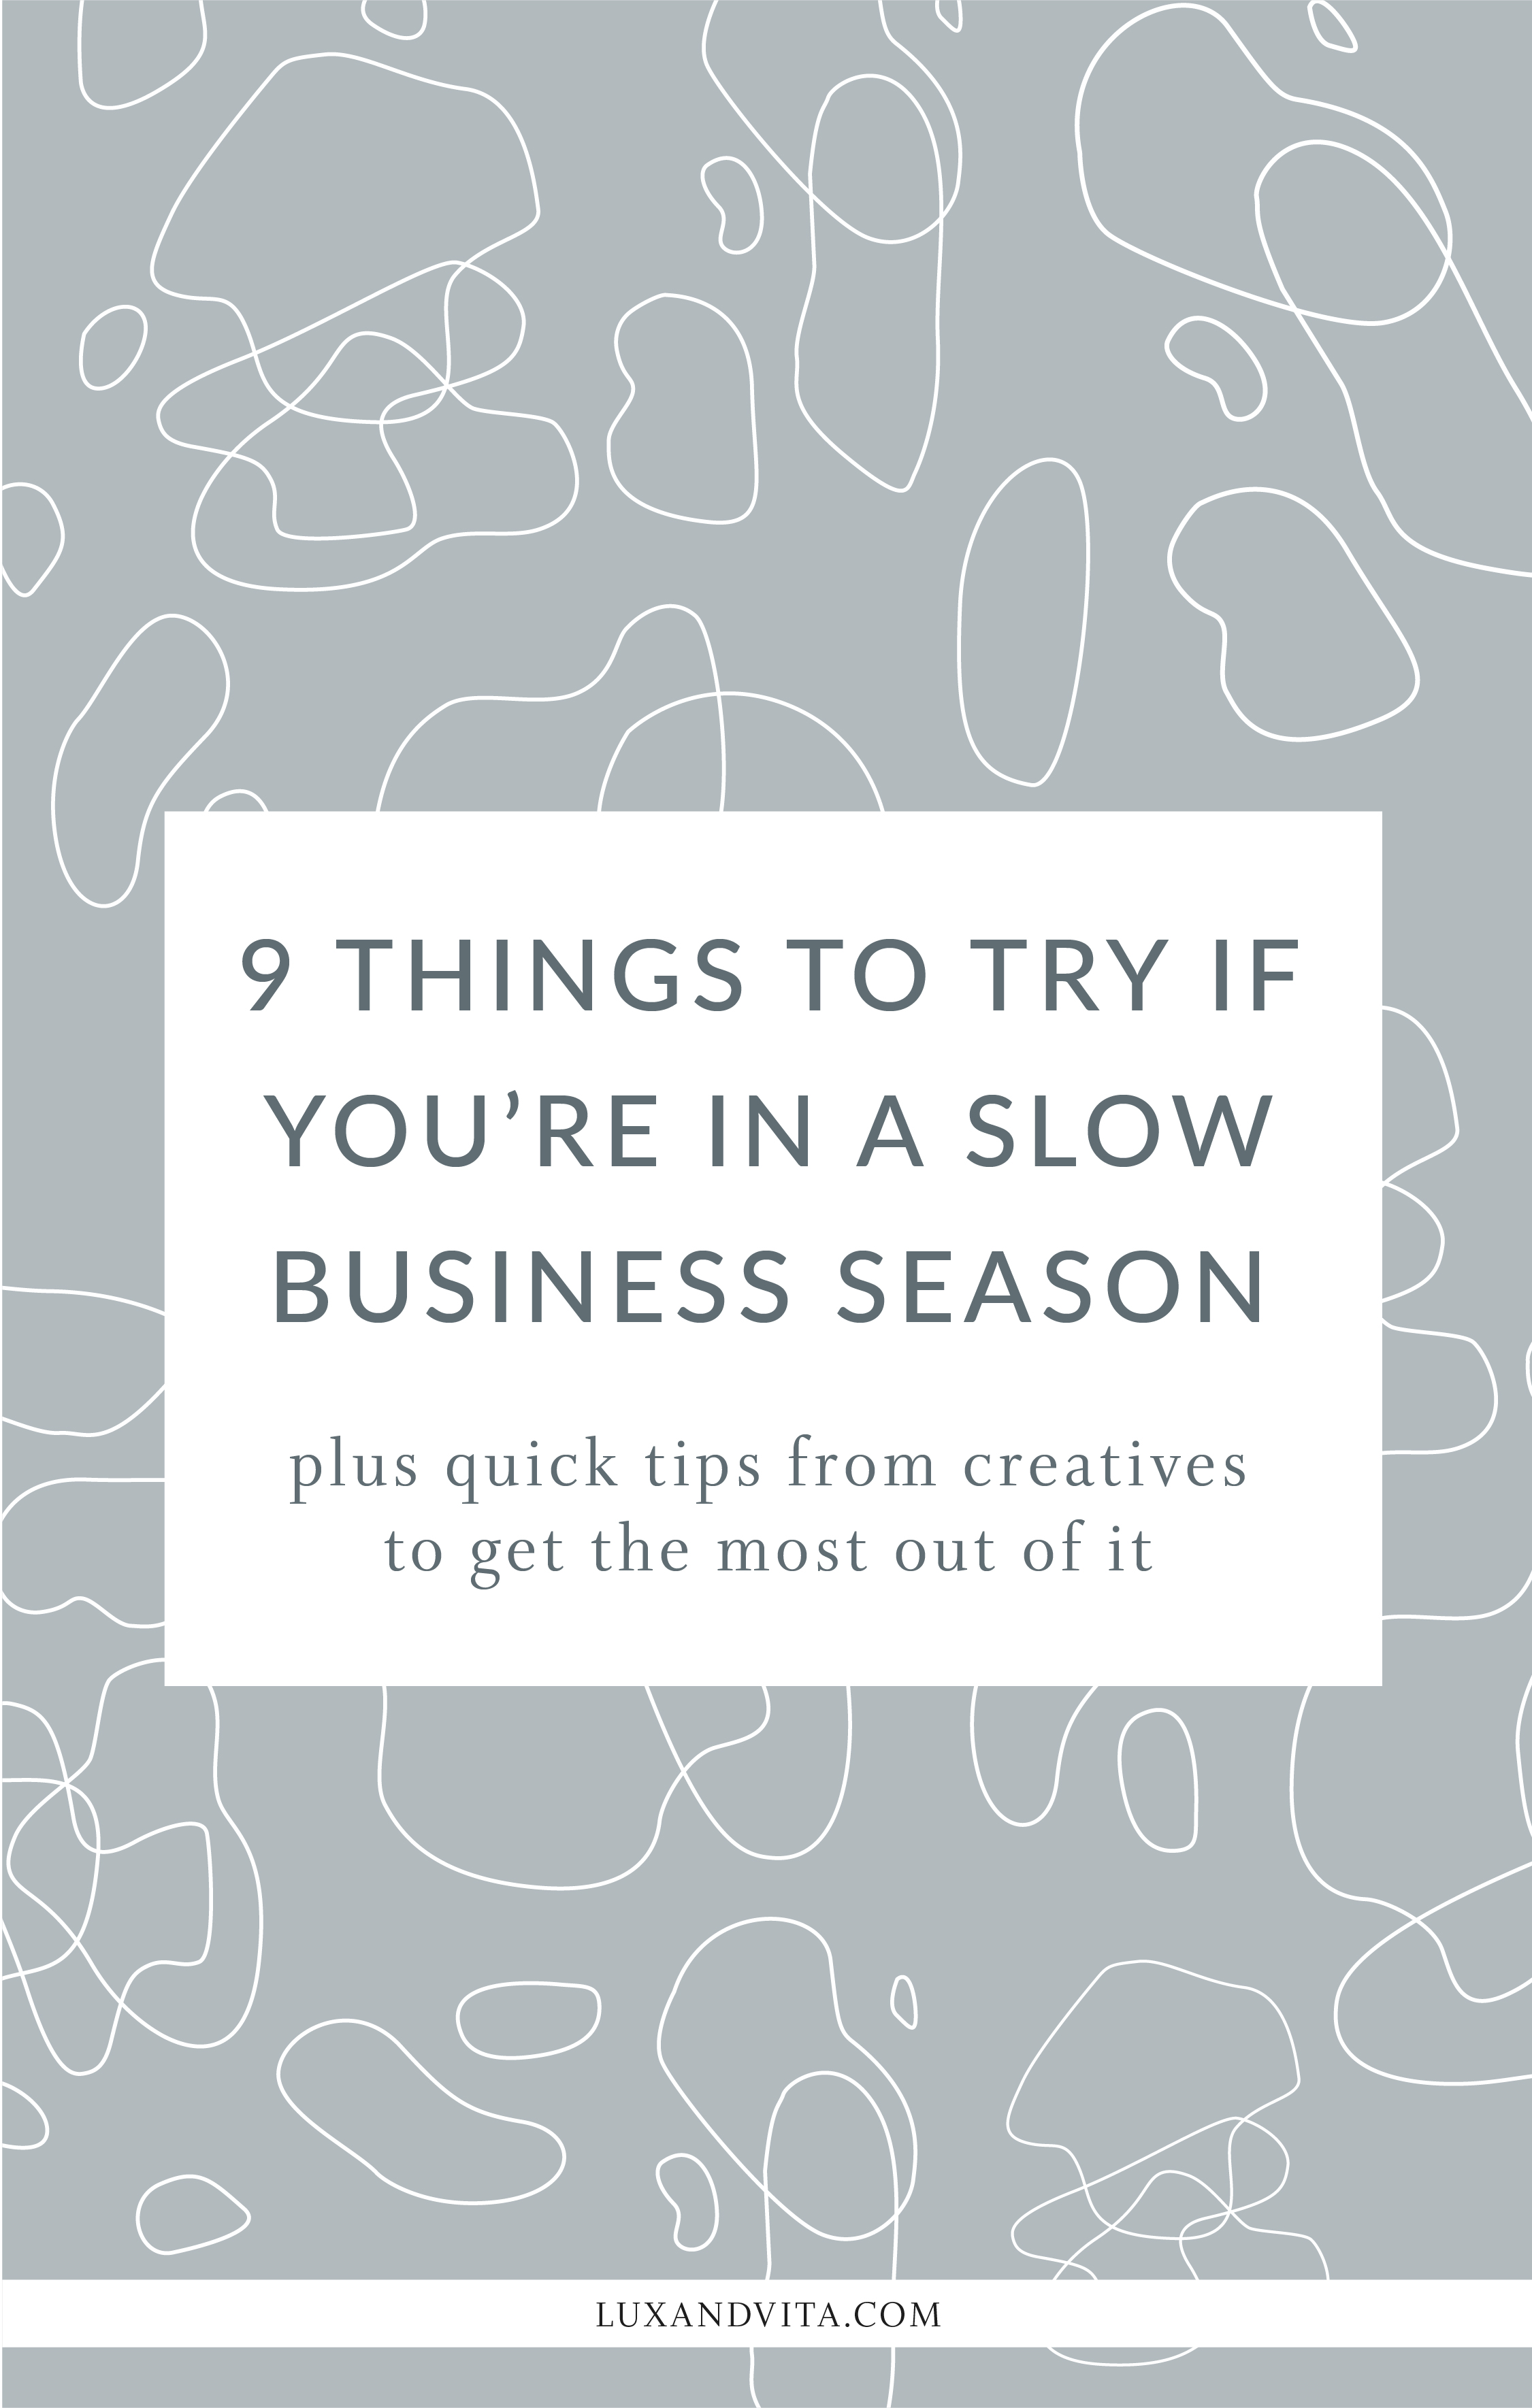 9 Things to do when business is slow_Pinterest 4.jpg